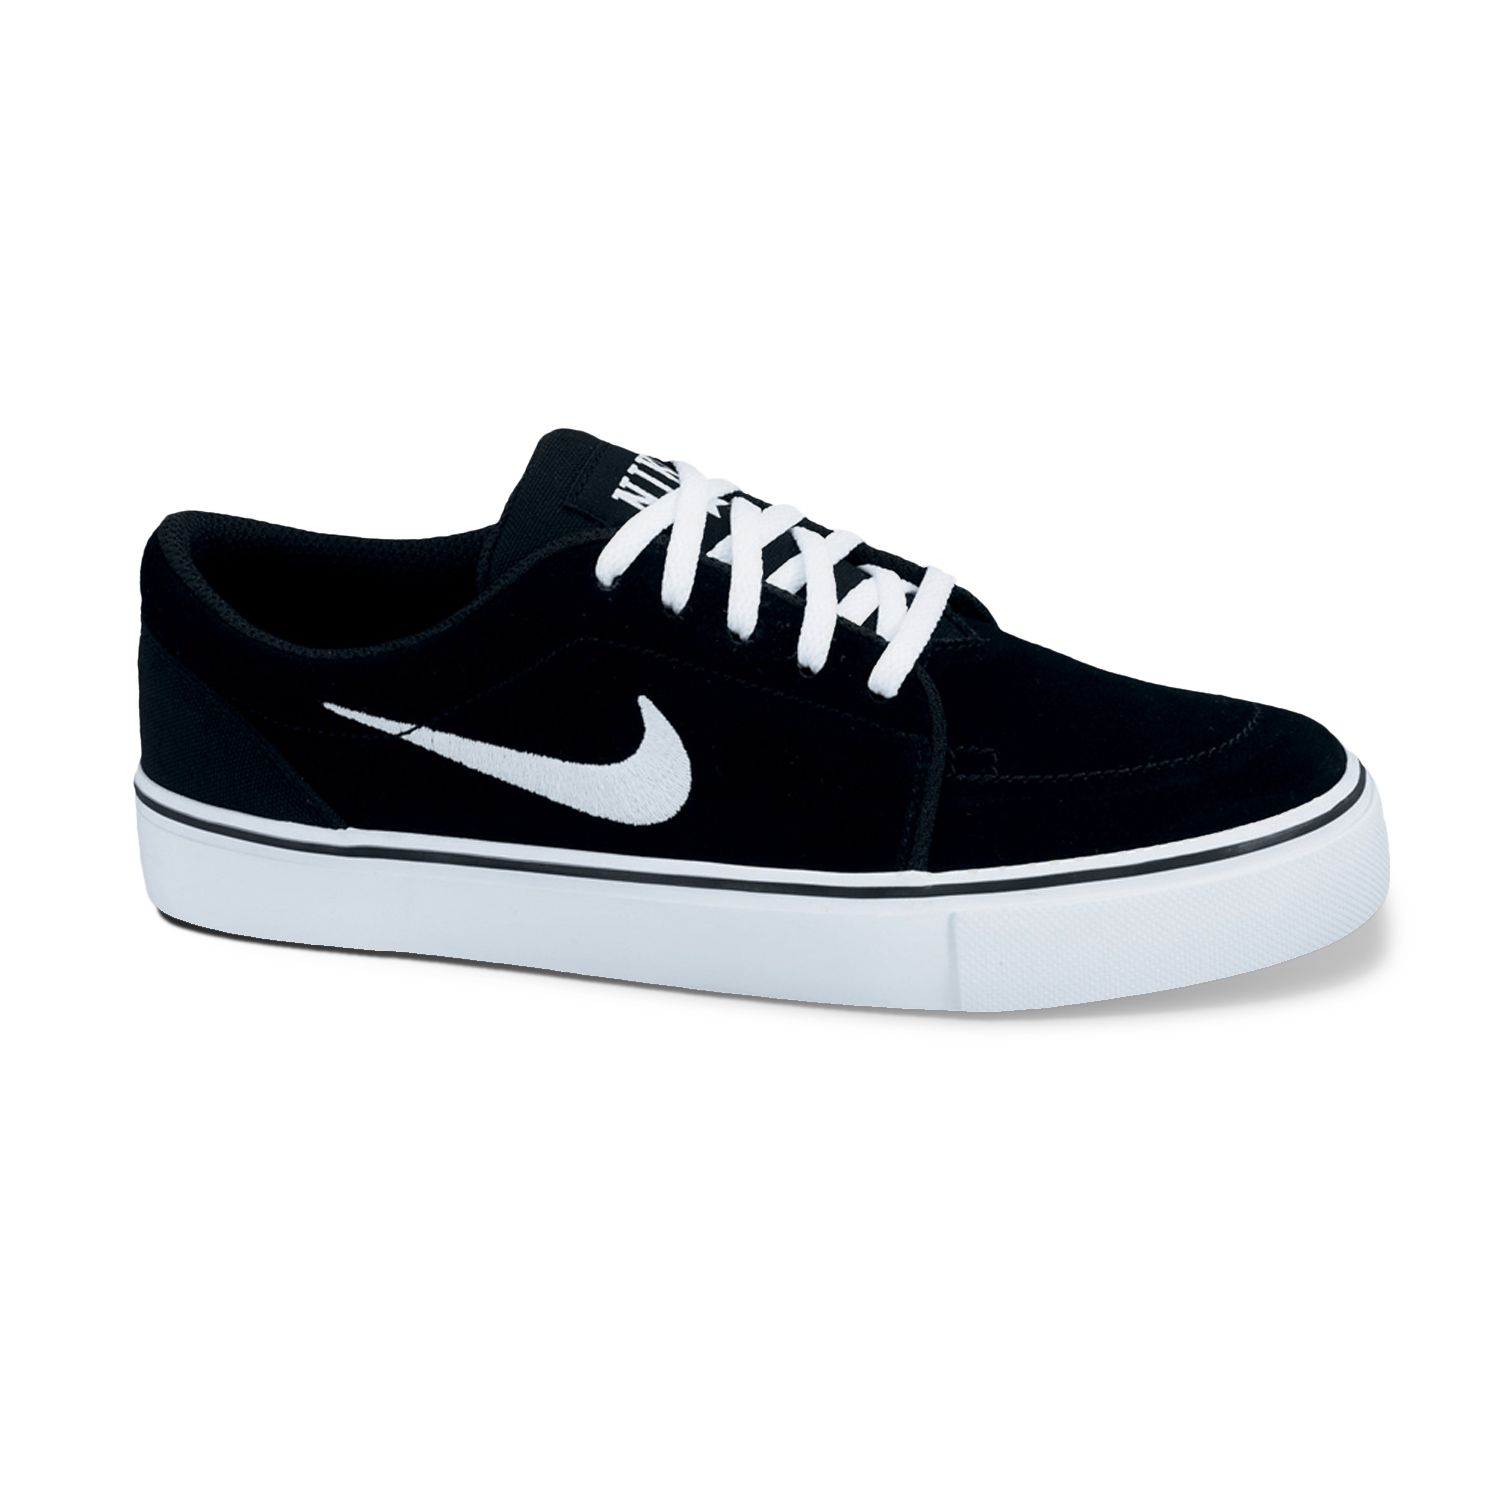 Nike Black Satire Skate Shoes - Grade School Boys